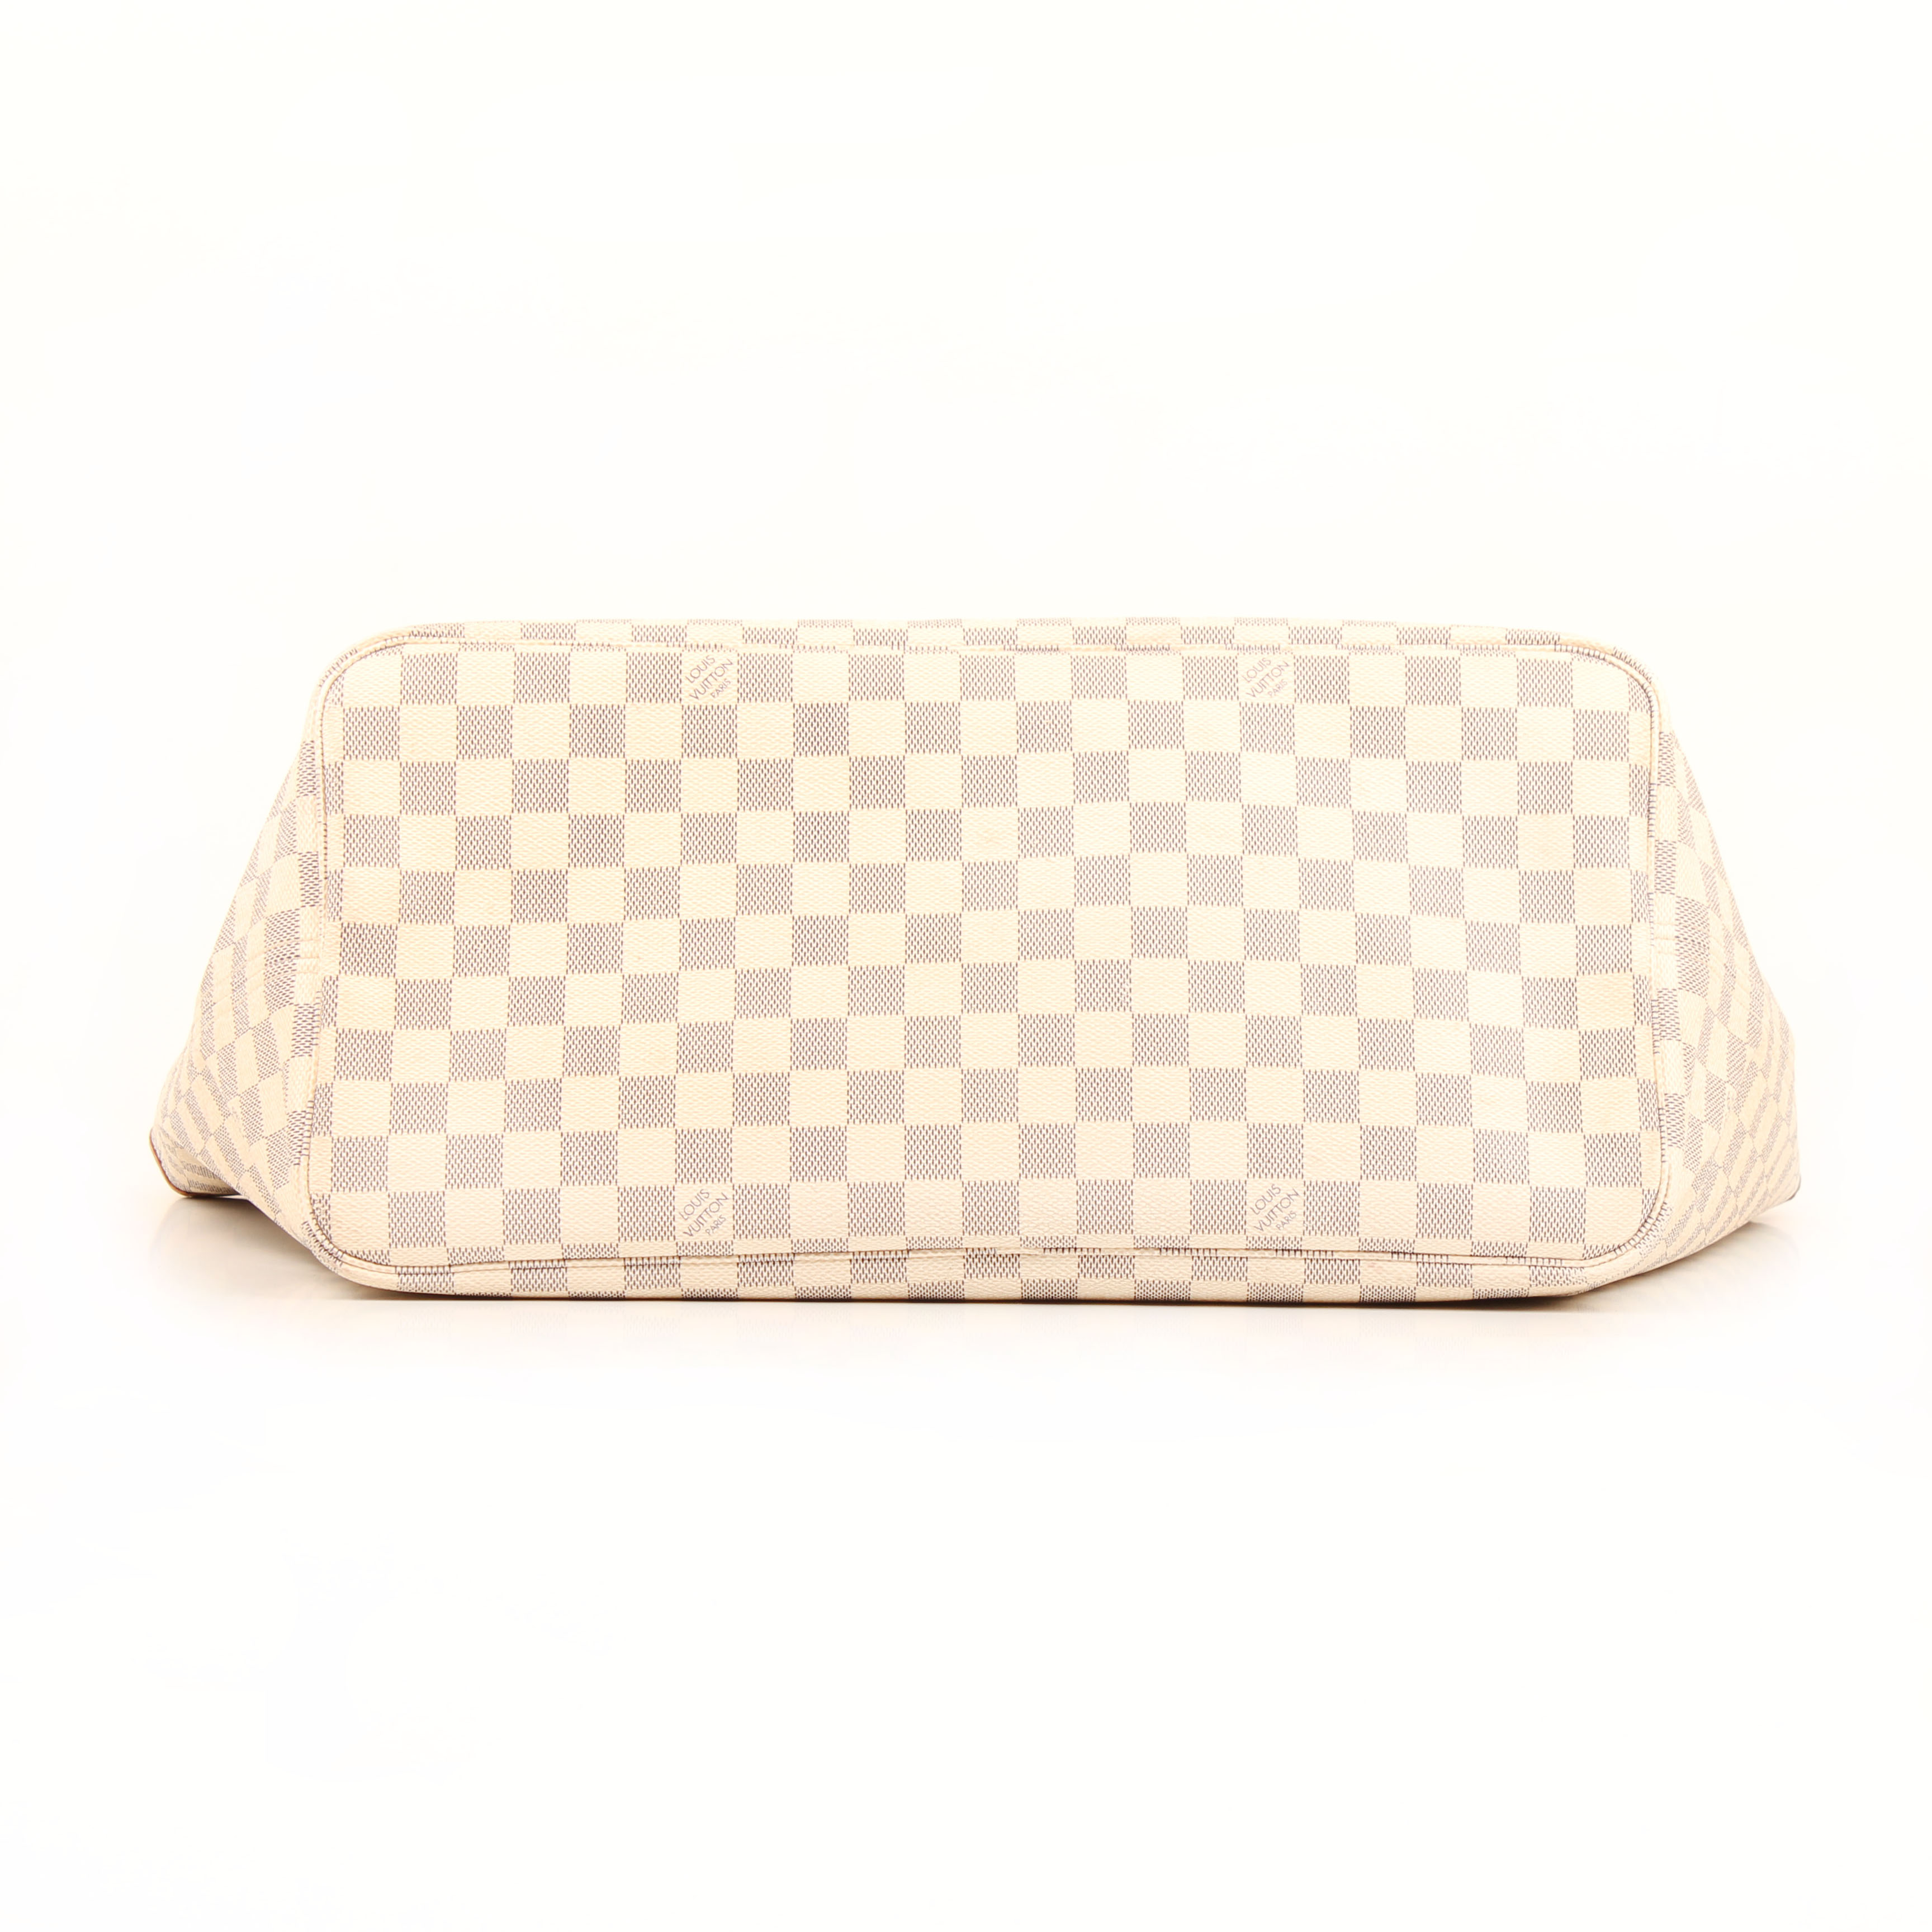 bolso louis vuitton neverfull gm damier azur base